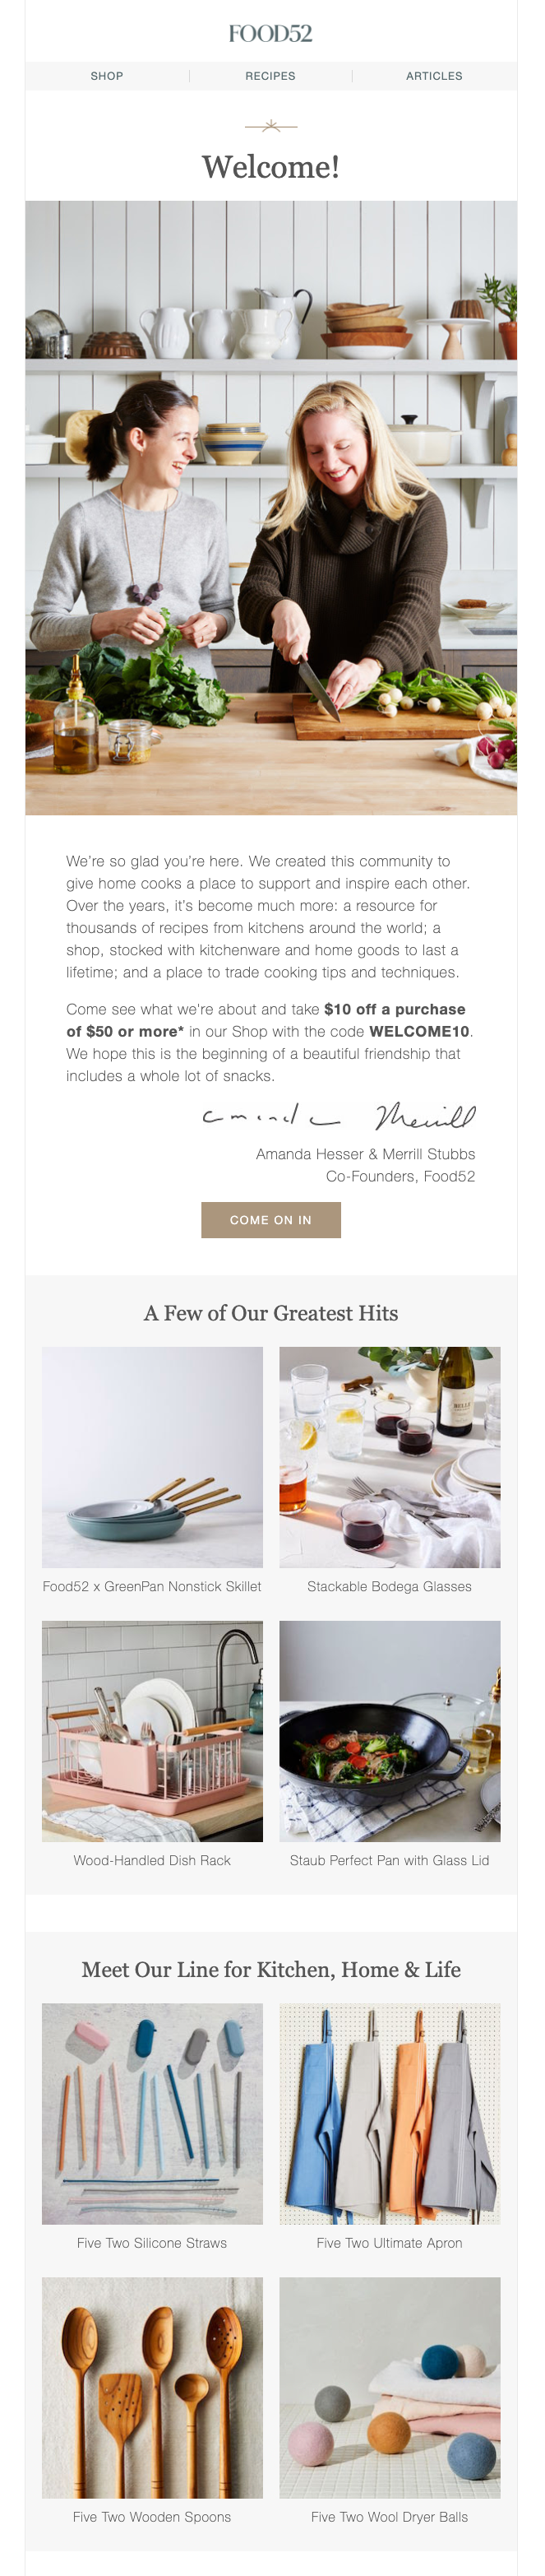 Welcome email from food blog and ecommerce website Food52